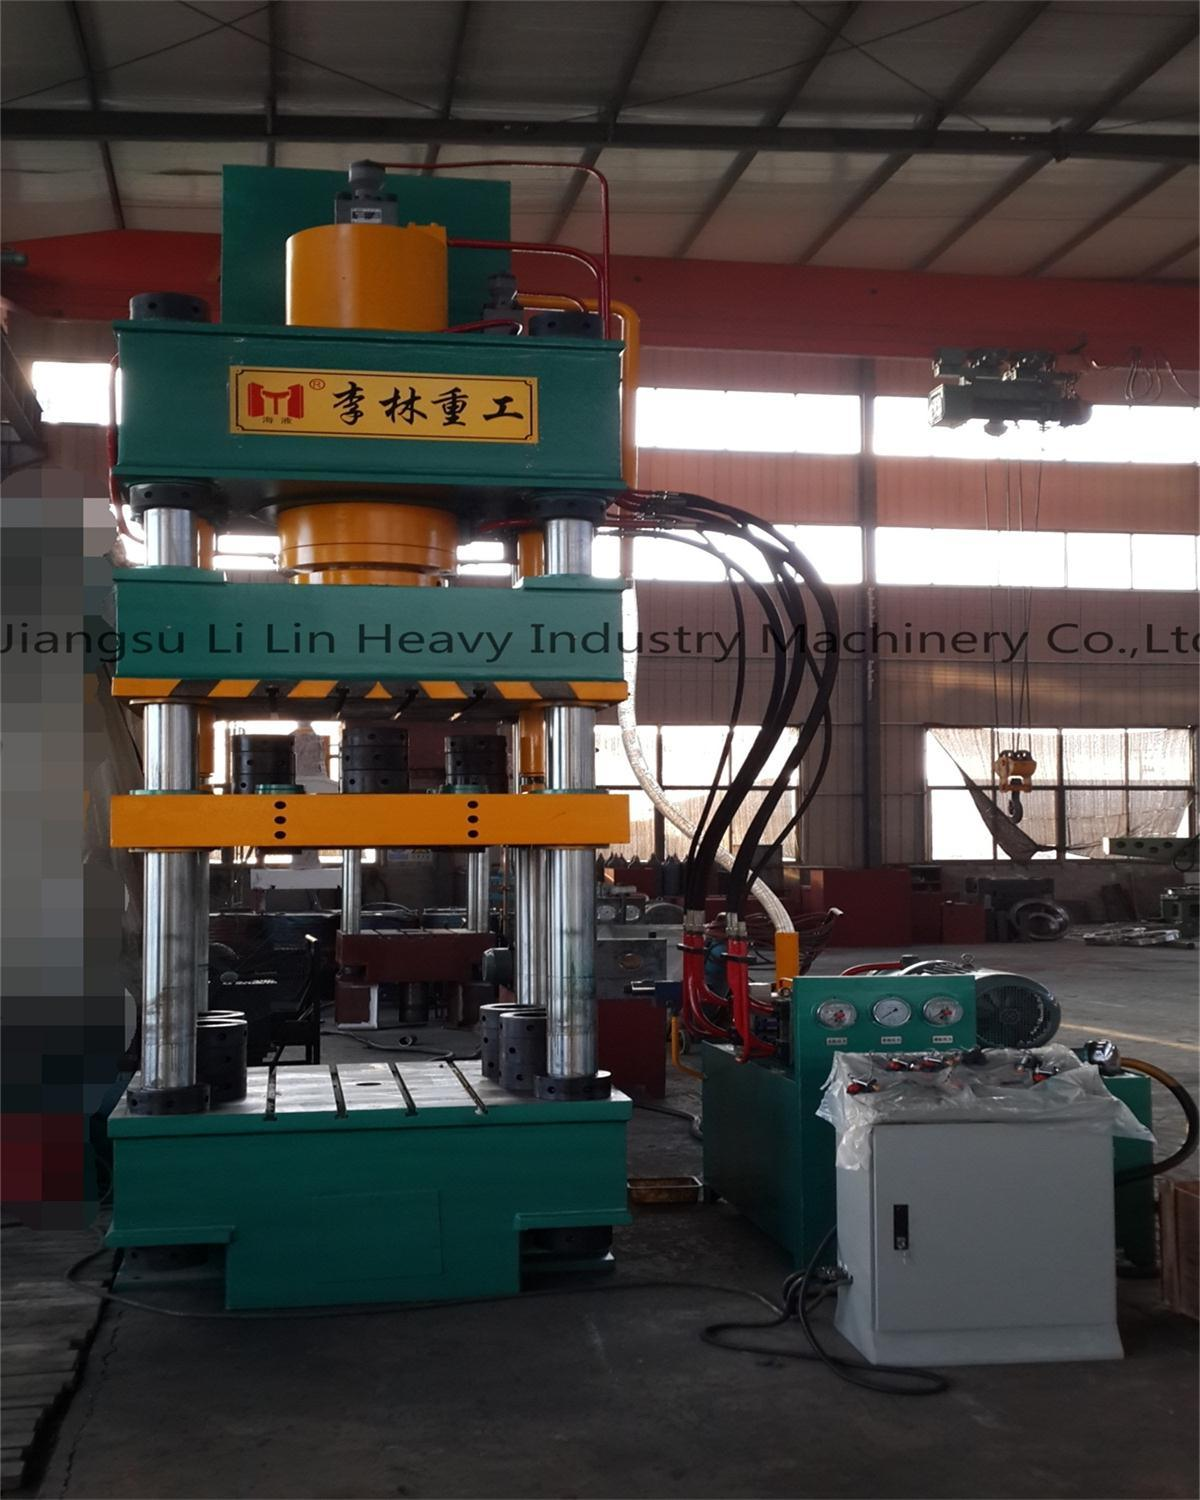 Double-Action Sheet Stretching Hydraulic Press Yll28-200/300